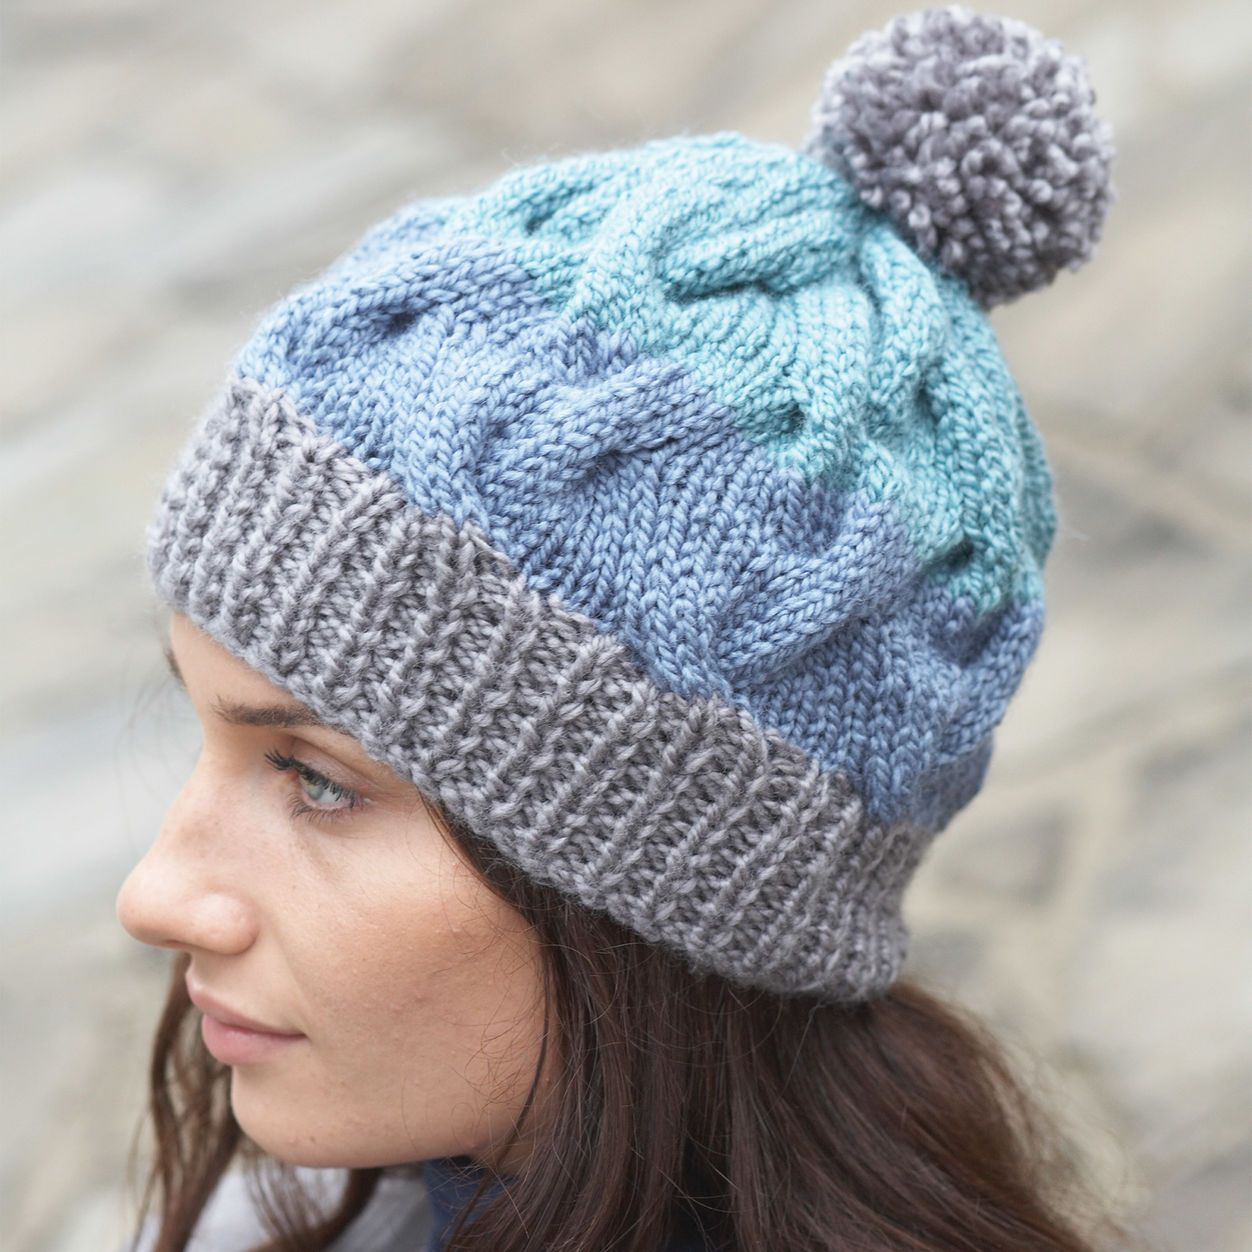 Patons Striped Cable Hat free pattern | Cable knit hat ...